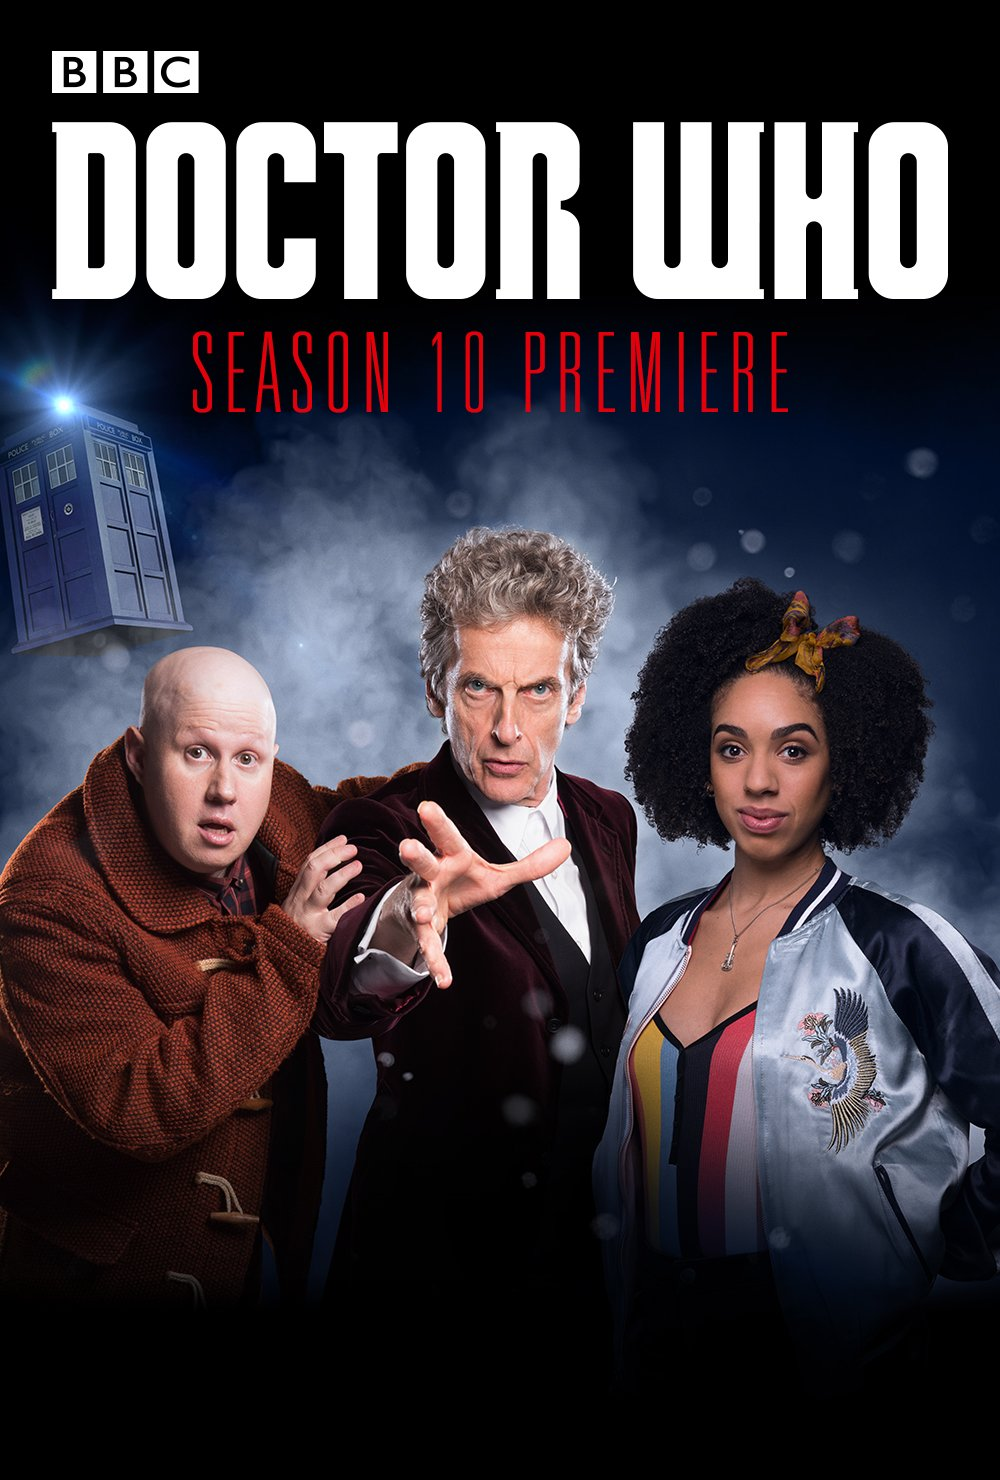 Doctor Who Fathom Events Poster